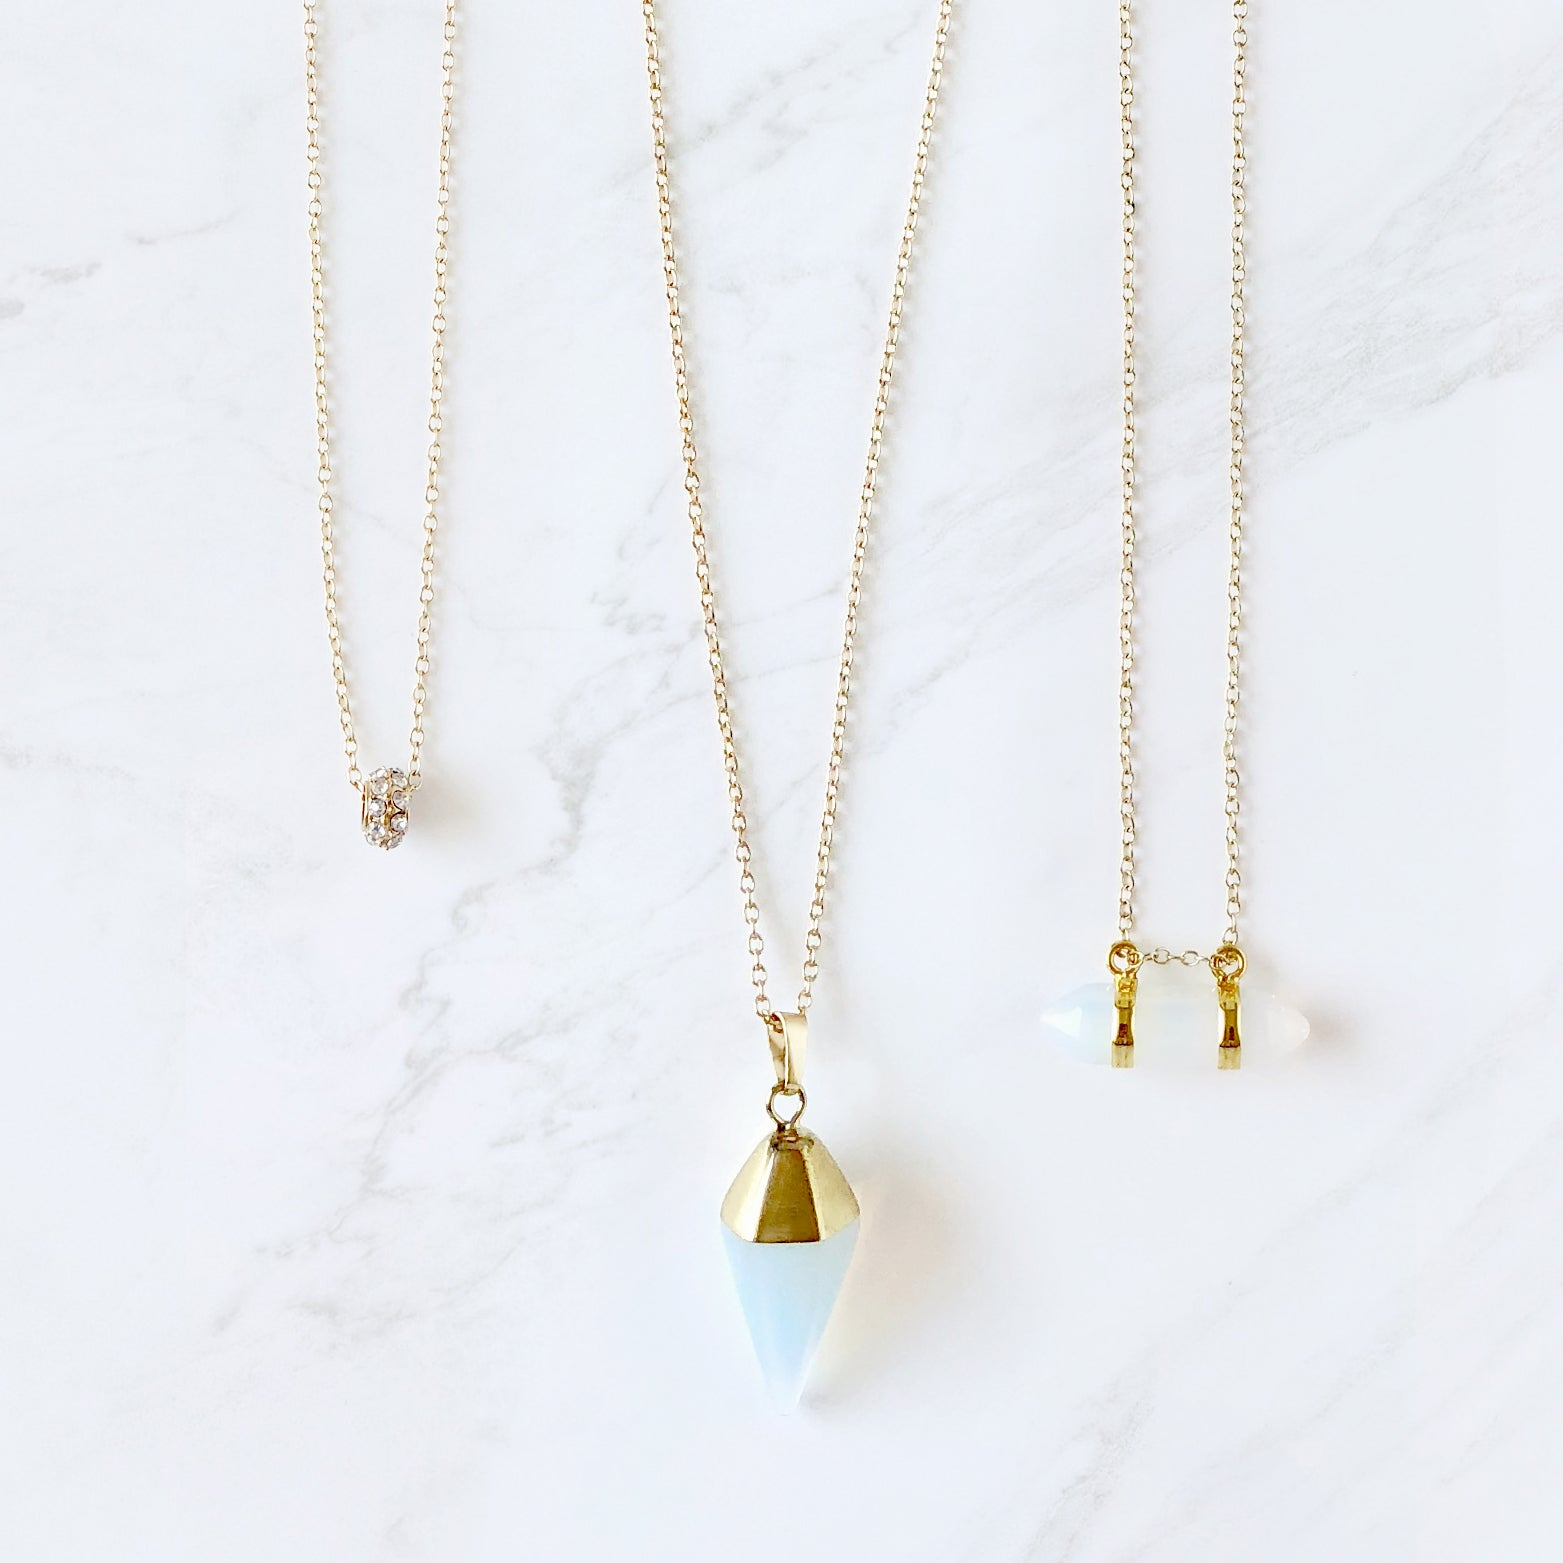 Crystal & Opalite Pendant Necklace Set - Love, Kuza